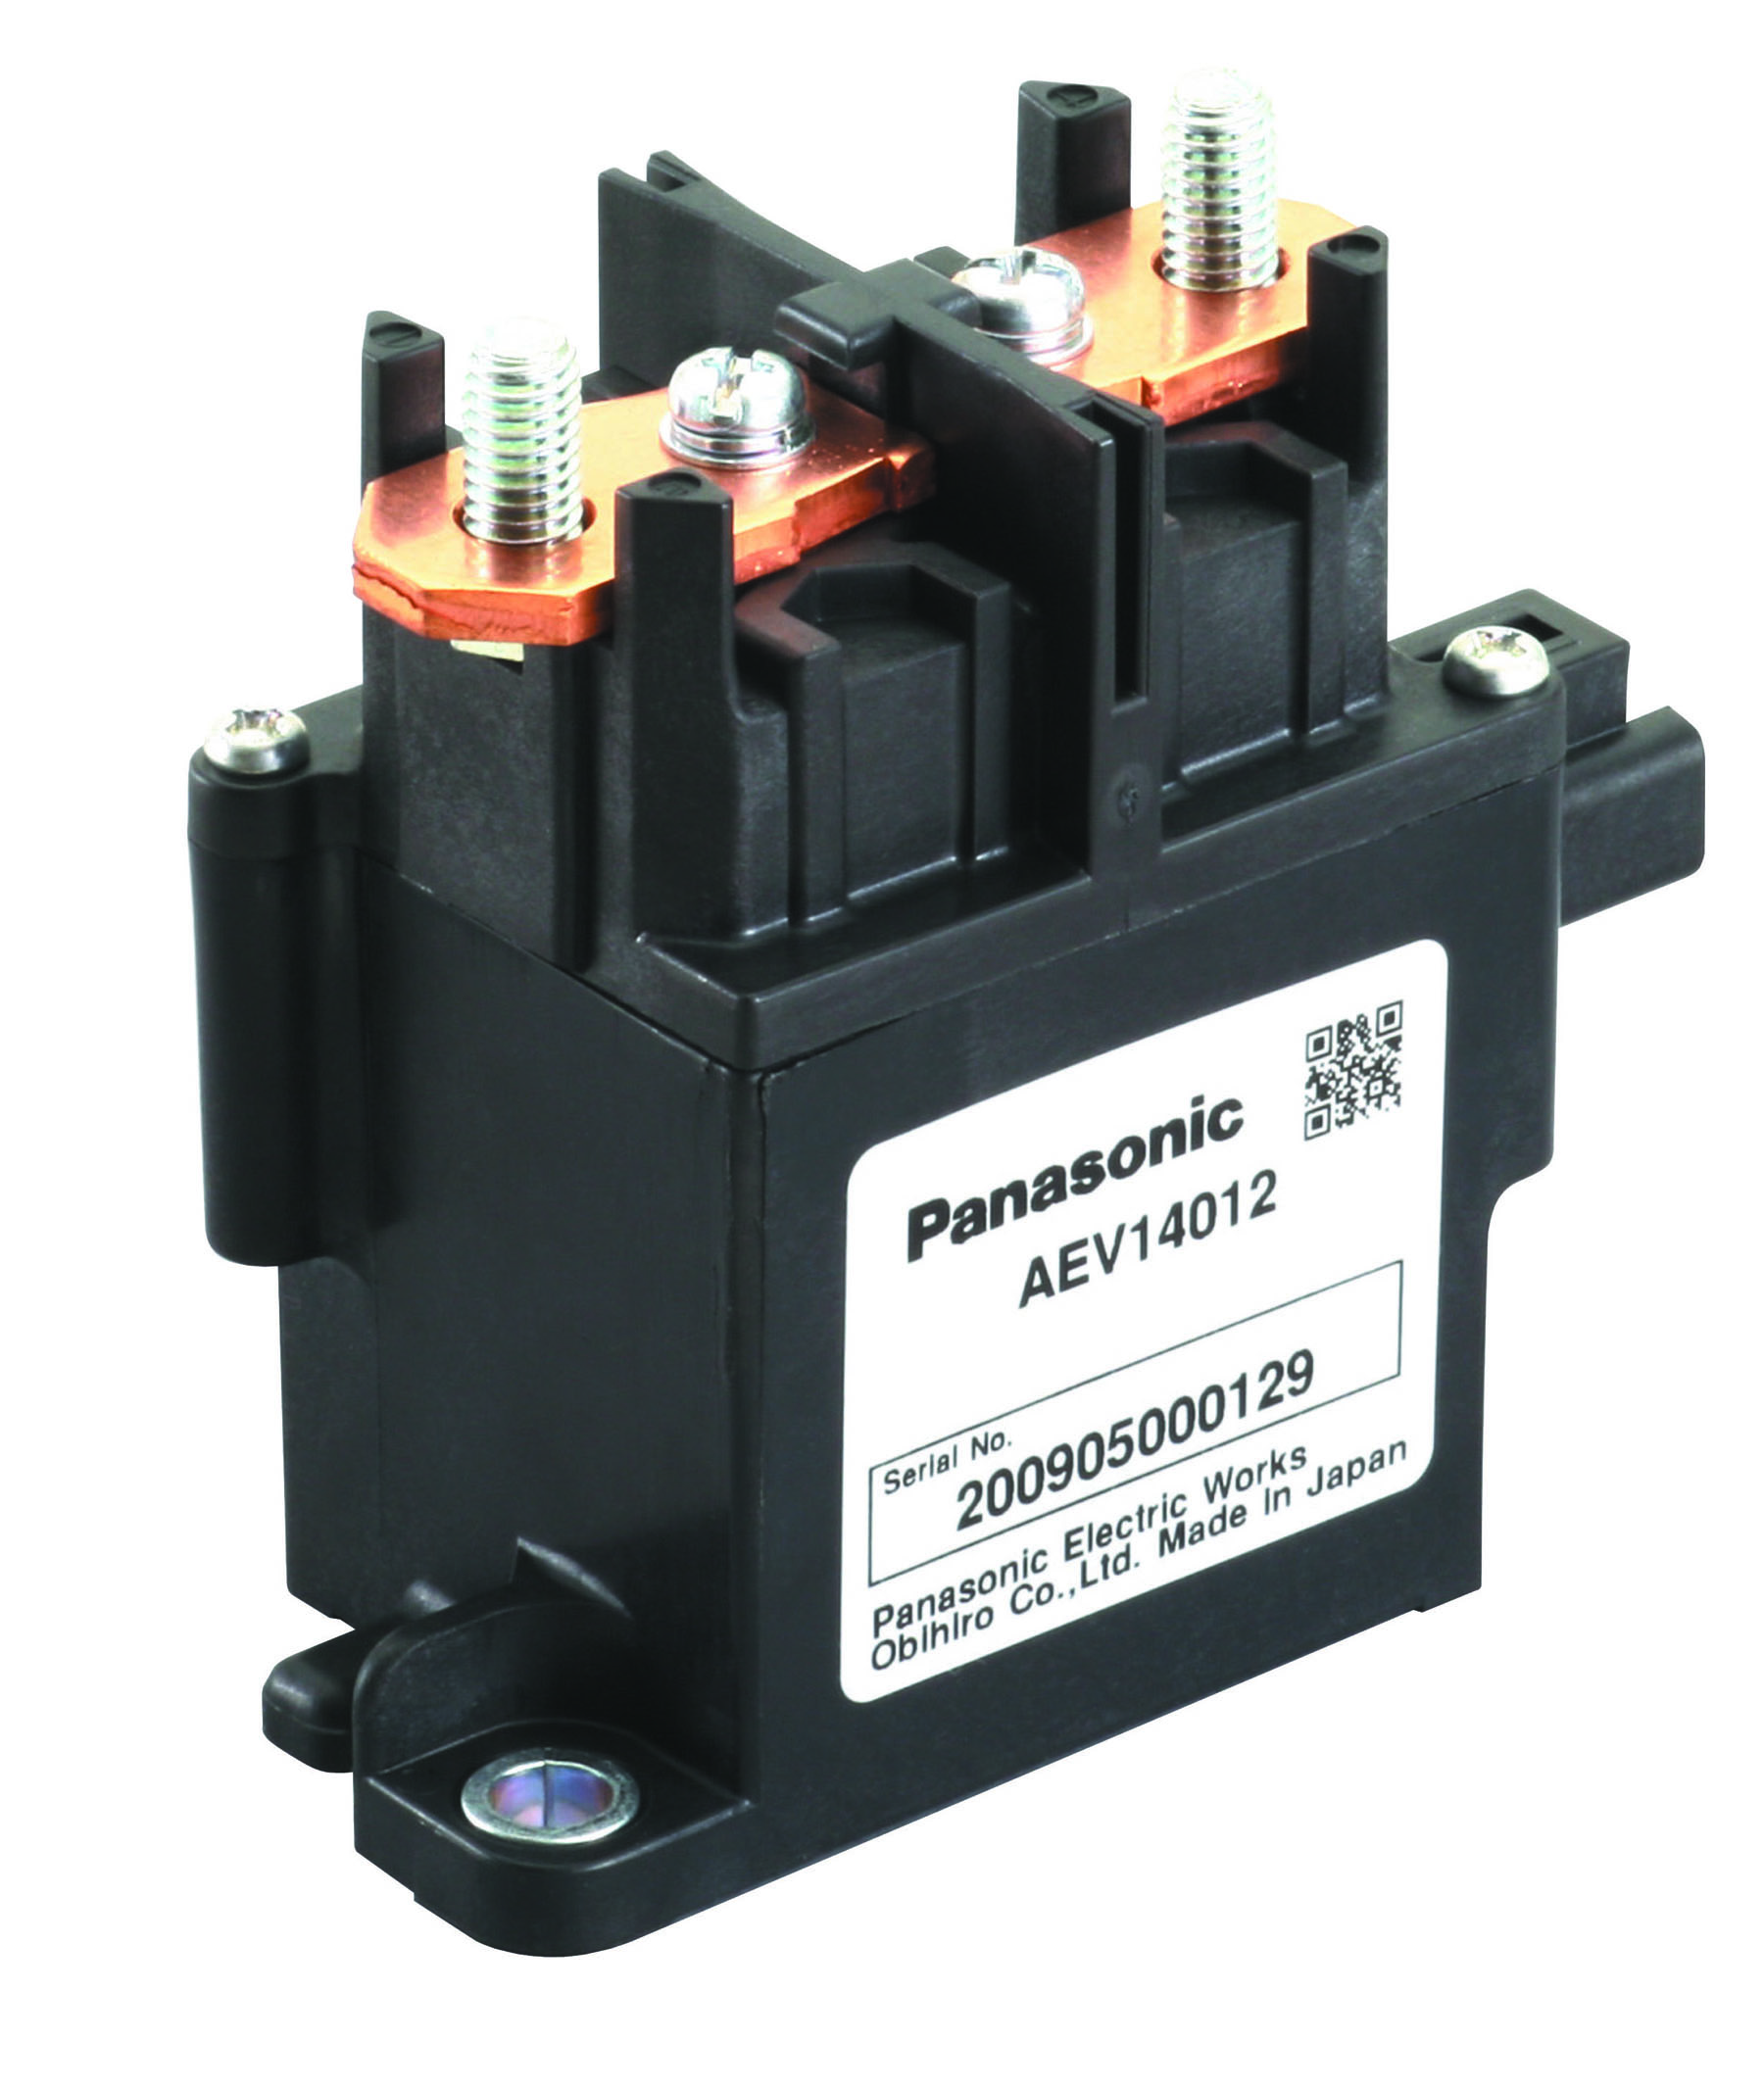 Panasonic's electric vehicle relays for DC switching in powertrain apps now at TTI